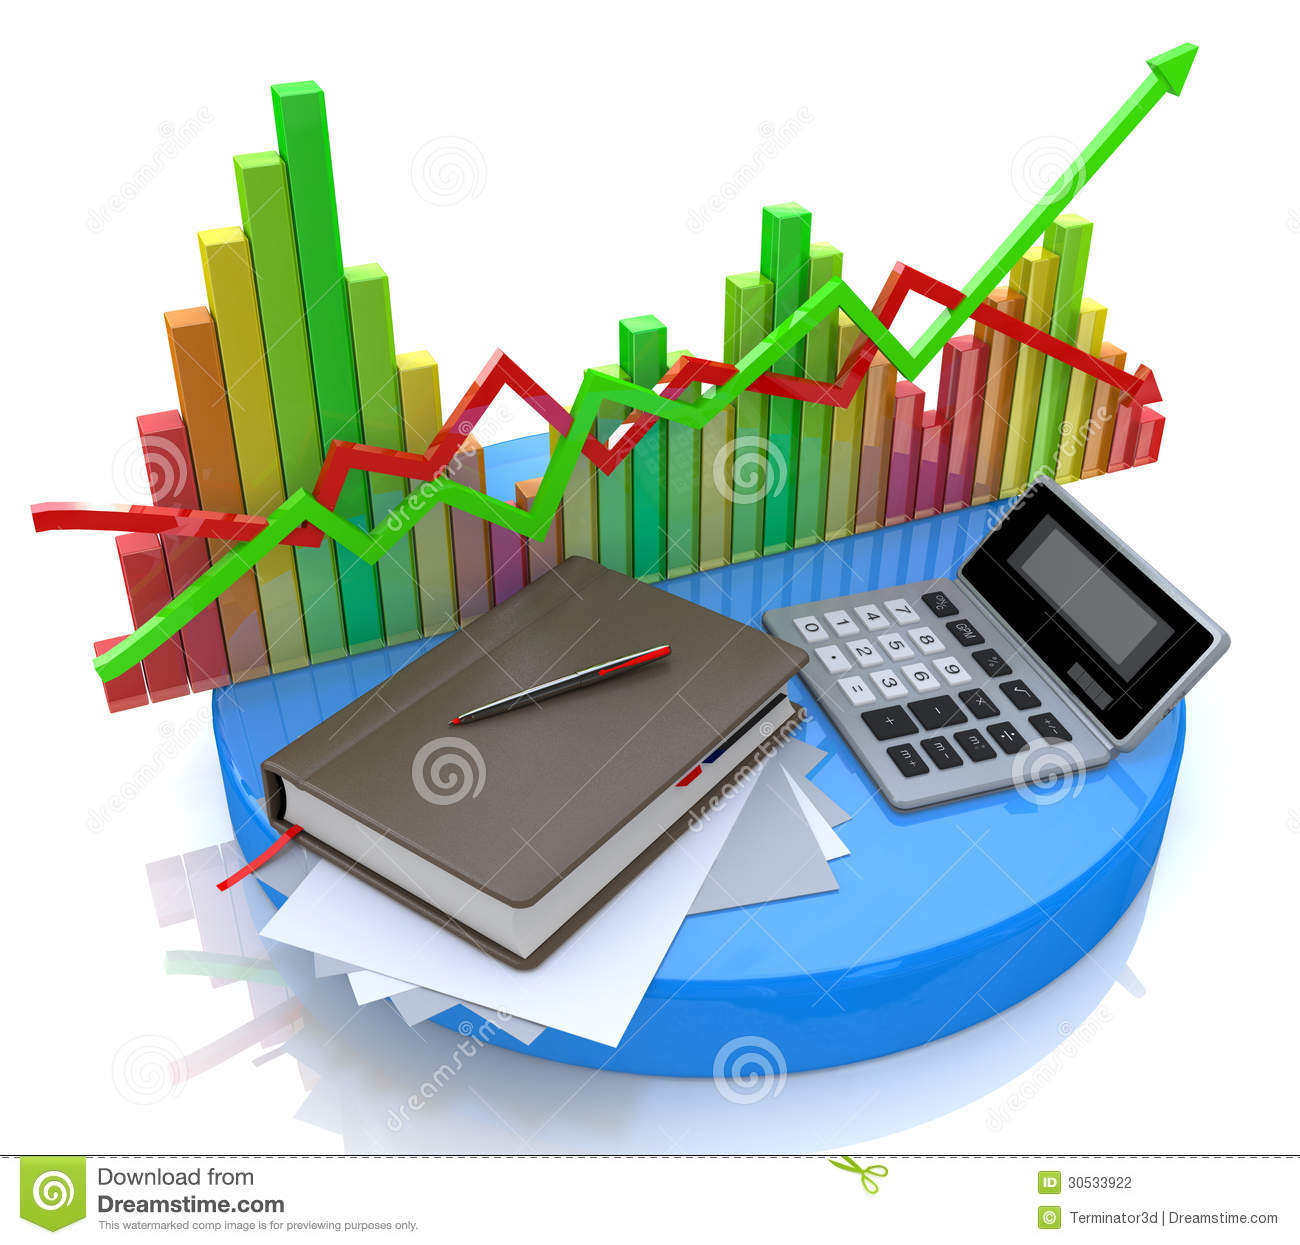 an analysis of market economy 9522 regulations in market economies 239  of environmental objectives  through market mecha-  analysis, economic instruments will be applicable to.